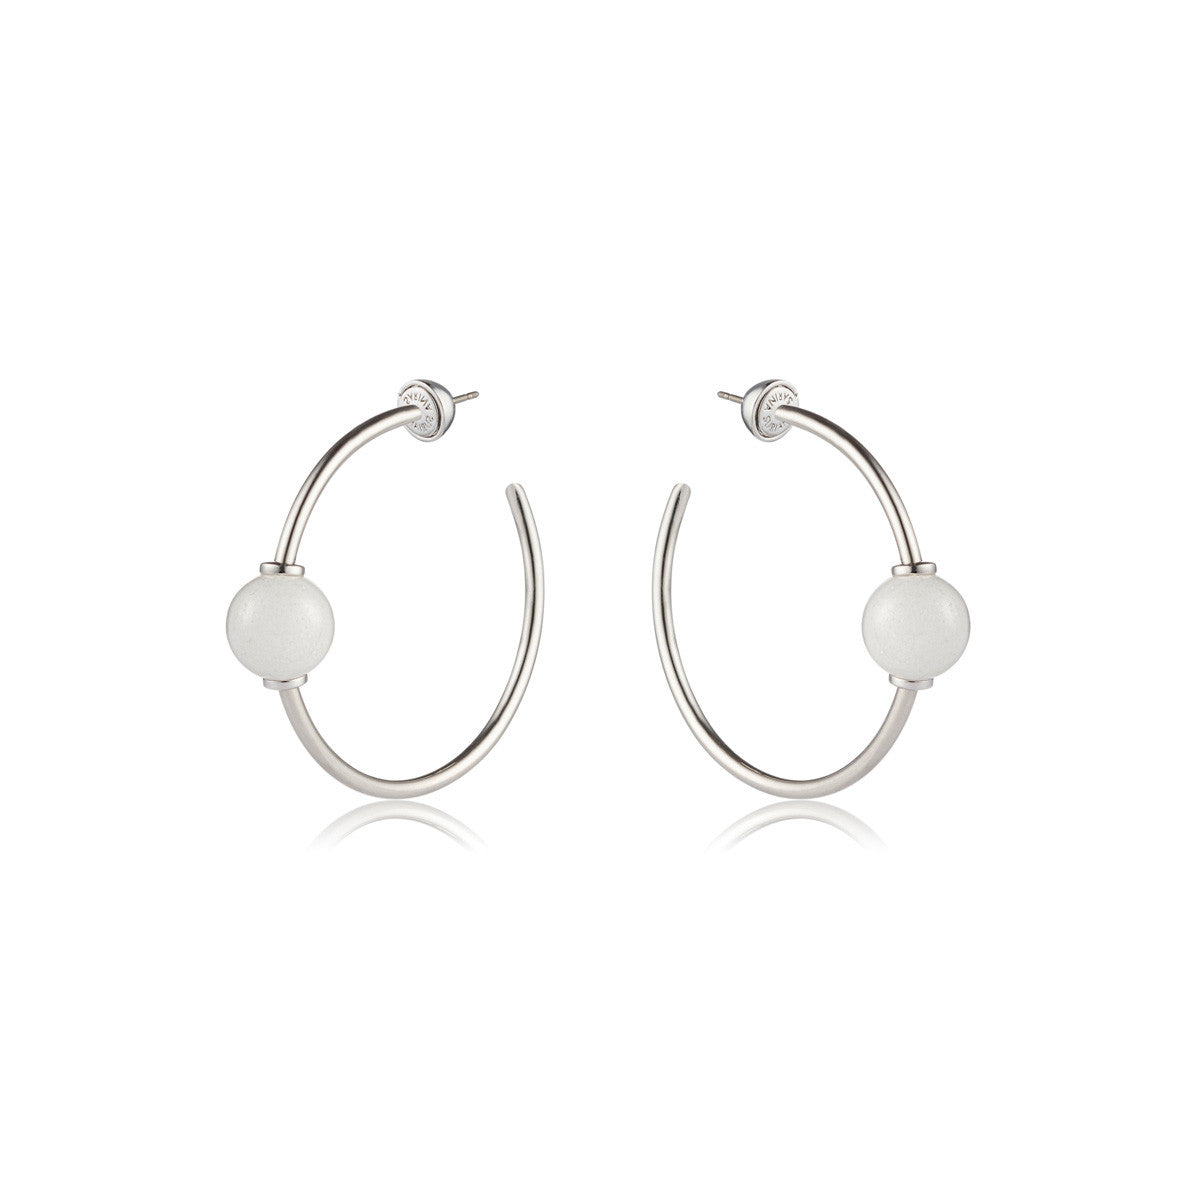 Solid brass, rhodium plated Mars Circulus hoop earrings set with hand cut natural white agate spheres – front